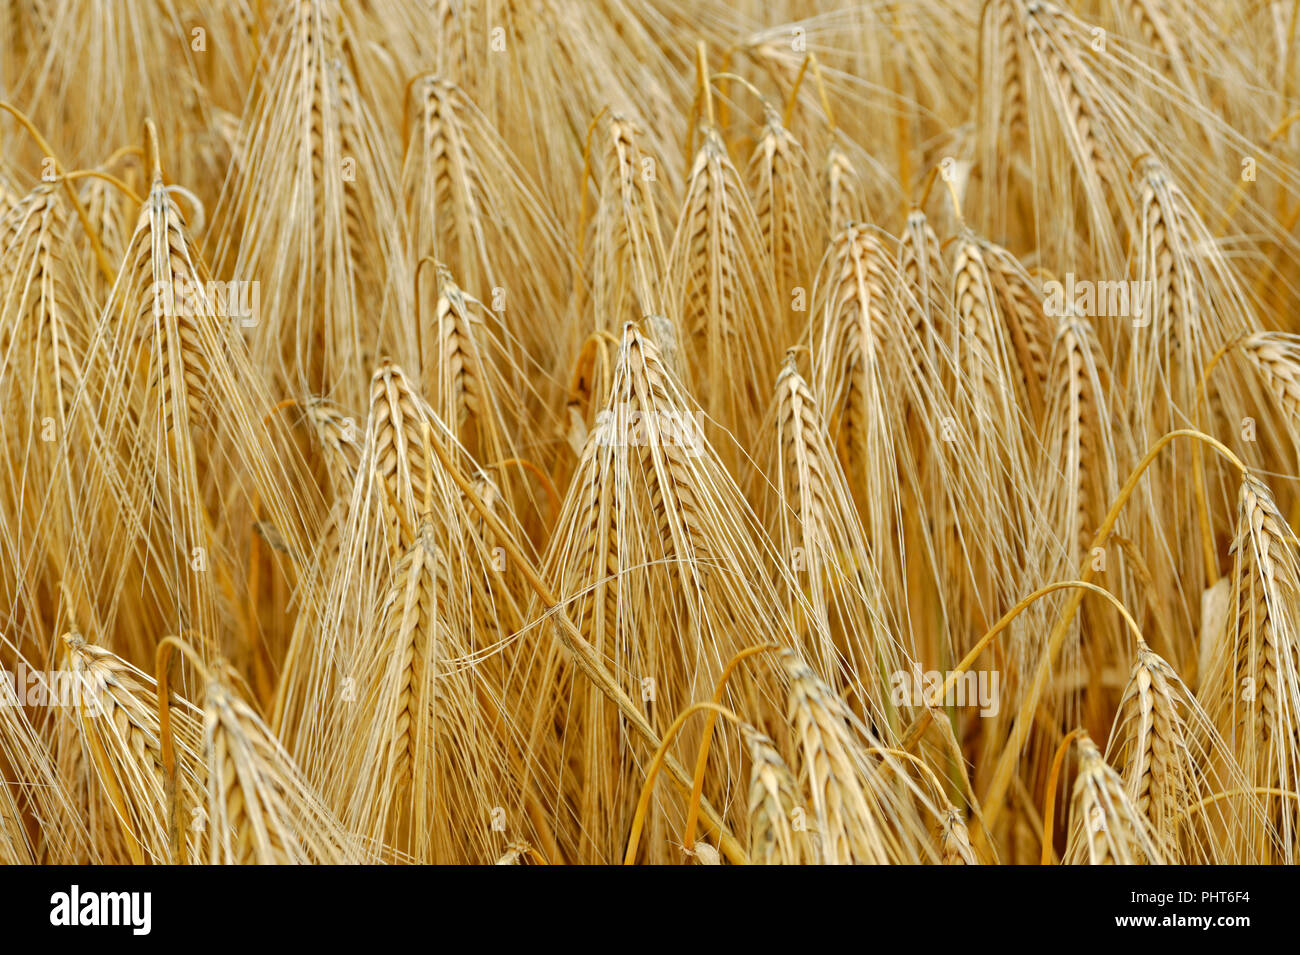 Field of wheat growing in the uk - Stock Image